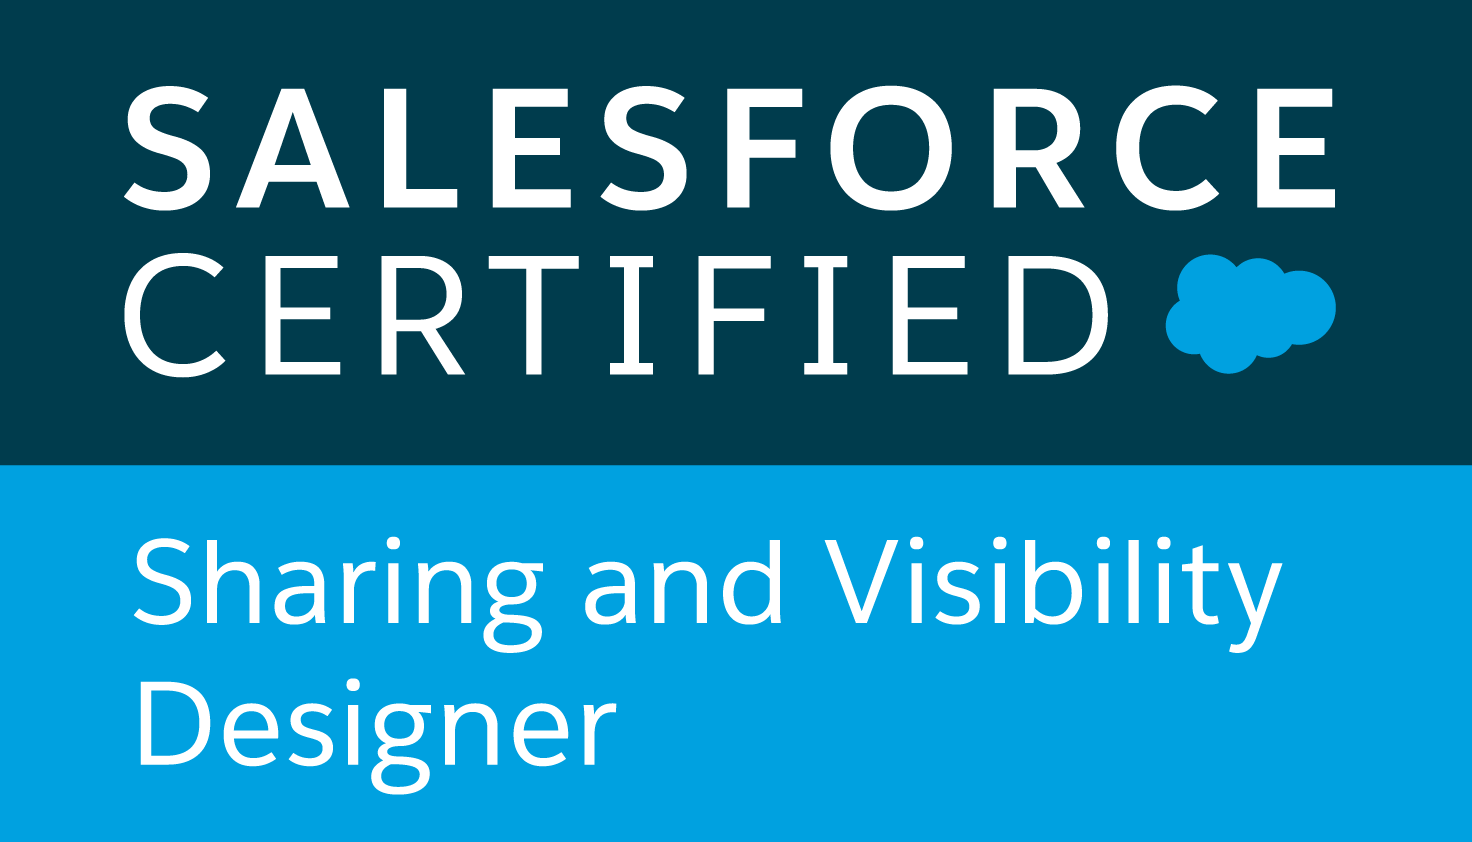 Sharing and Visibility Designer